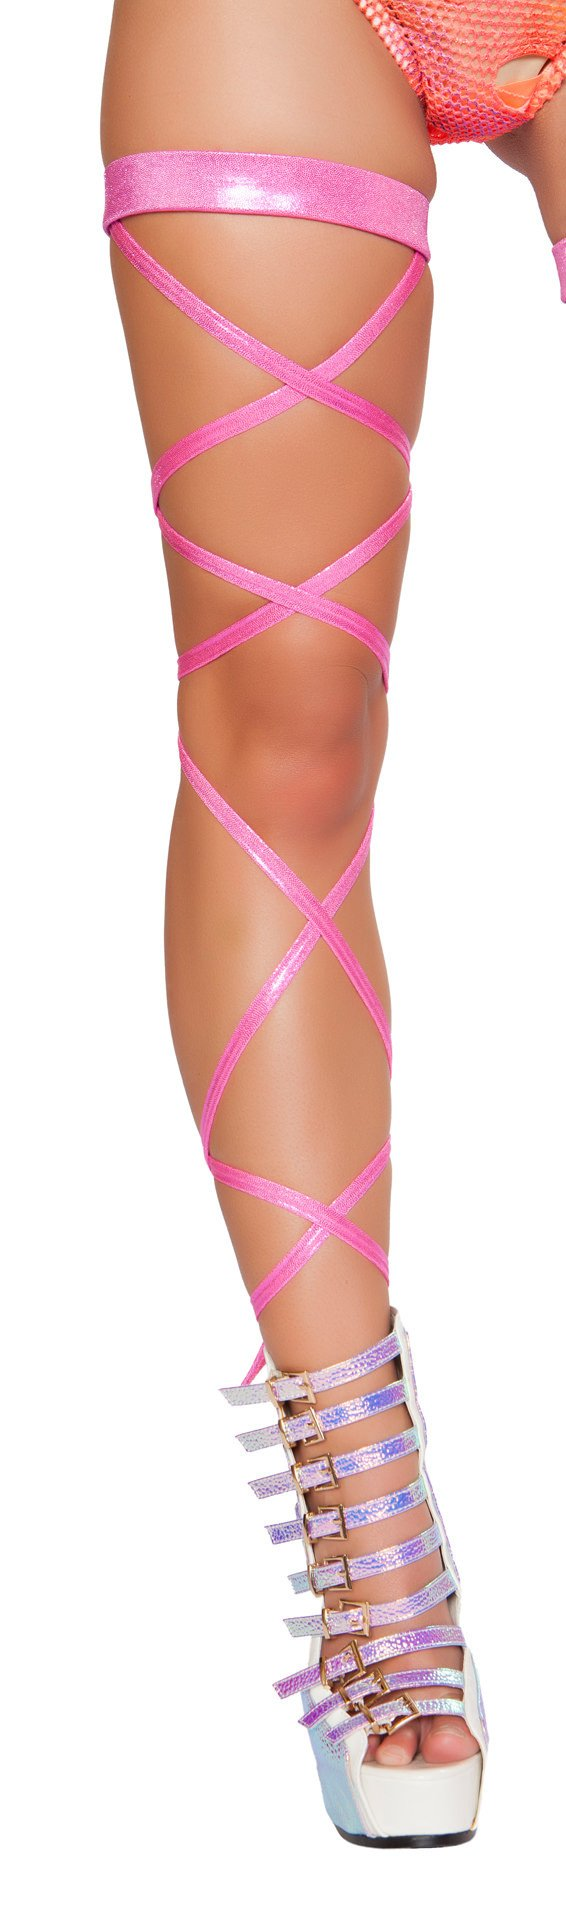 Shimmer Leg Strap with Attached Garter